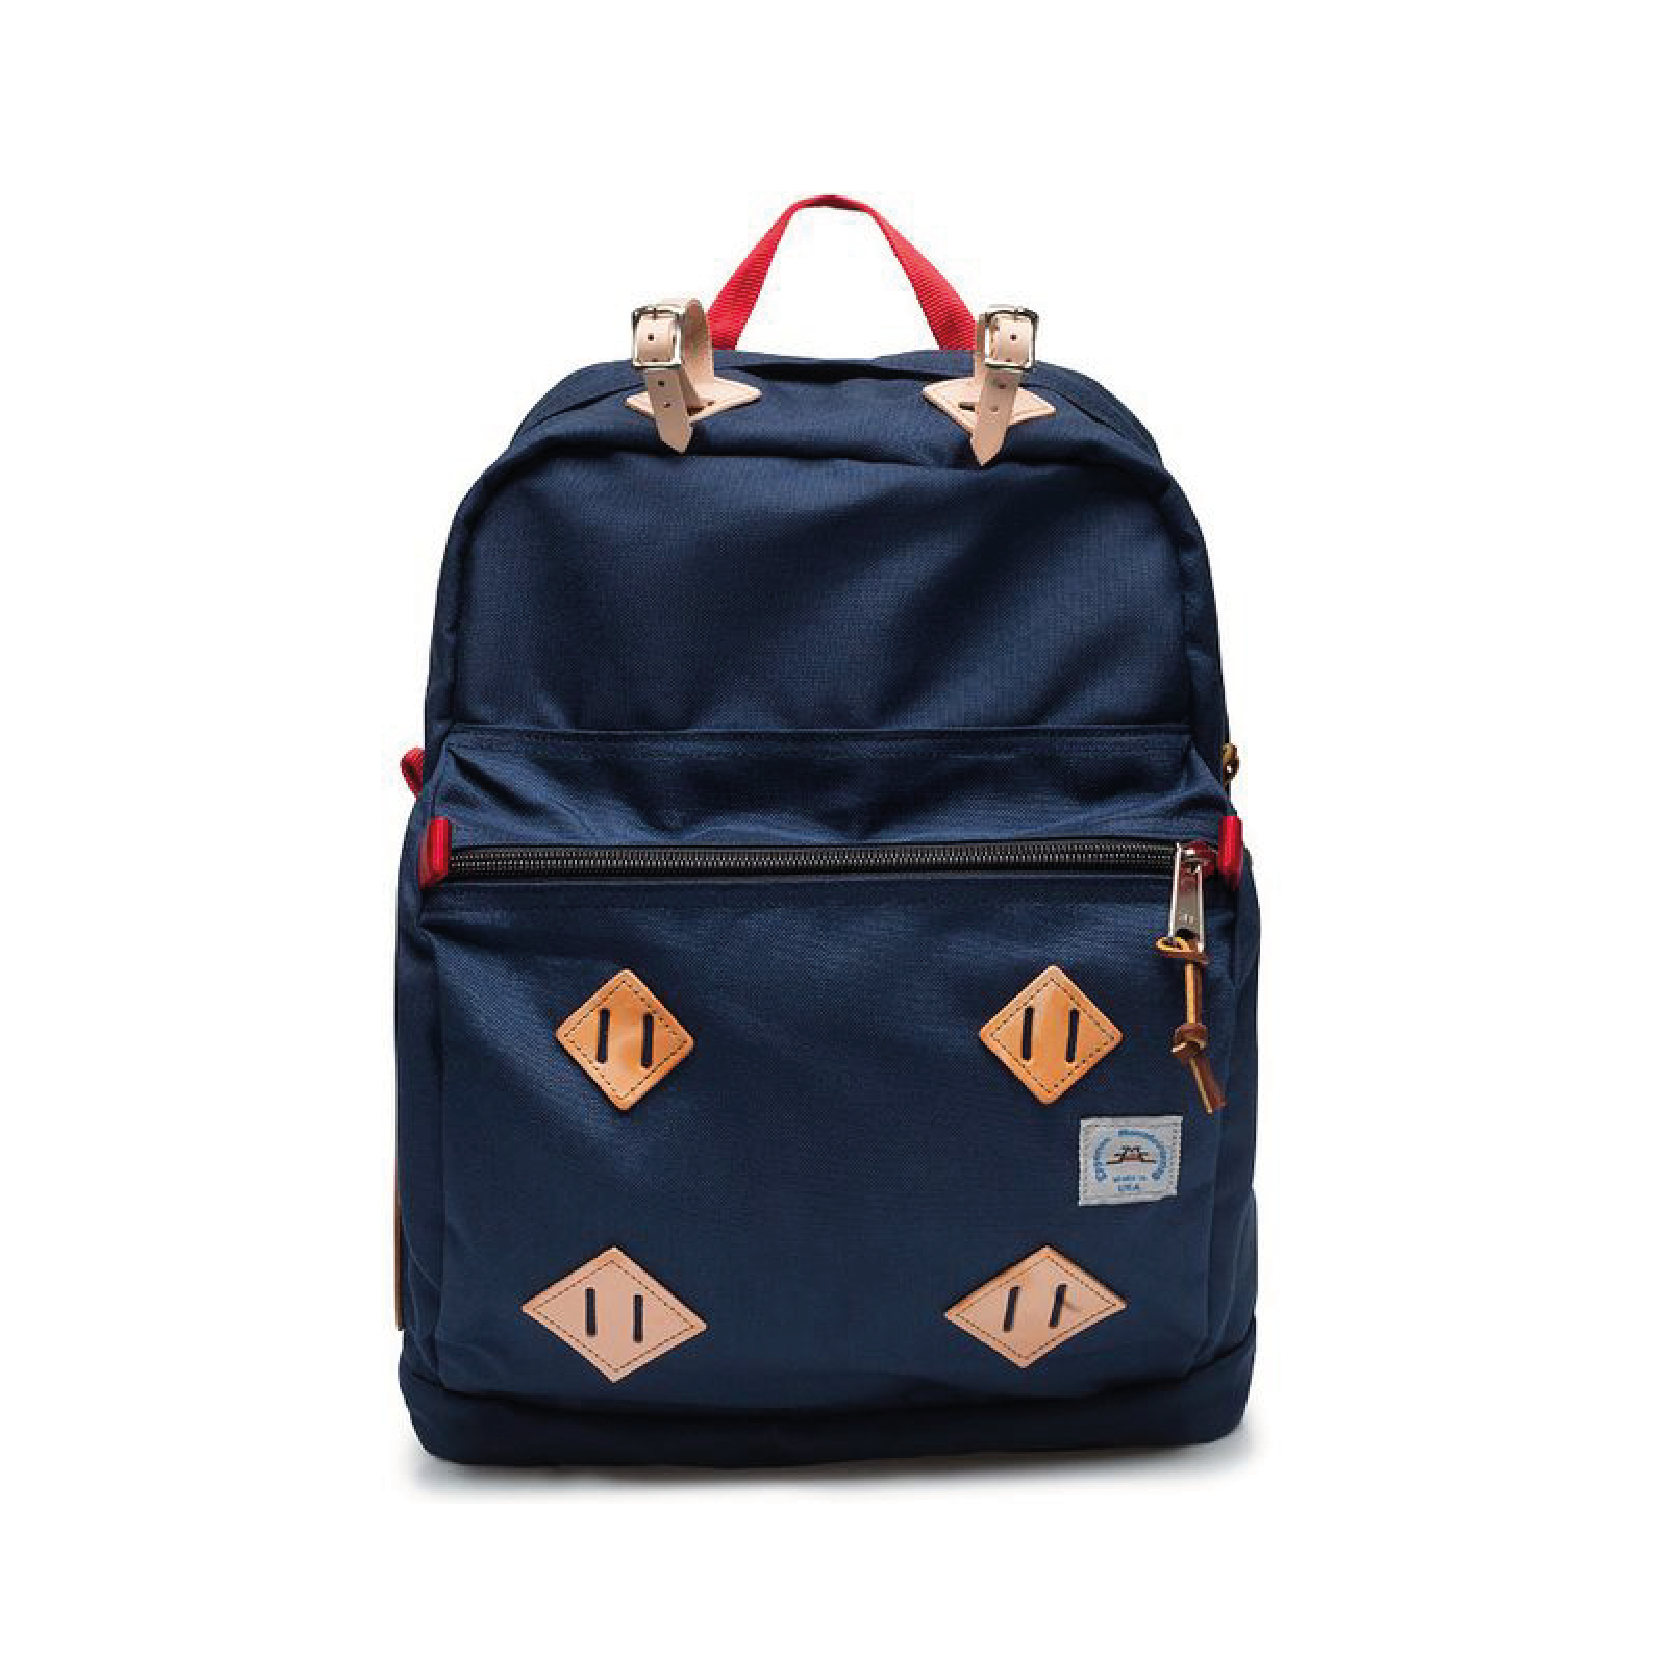 DAYPACK    By  Epperson Mountaineering     A tough and durable day pack with heritage styling and a modern twist.    SHOP NOW          £140